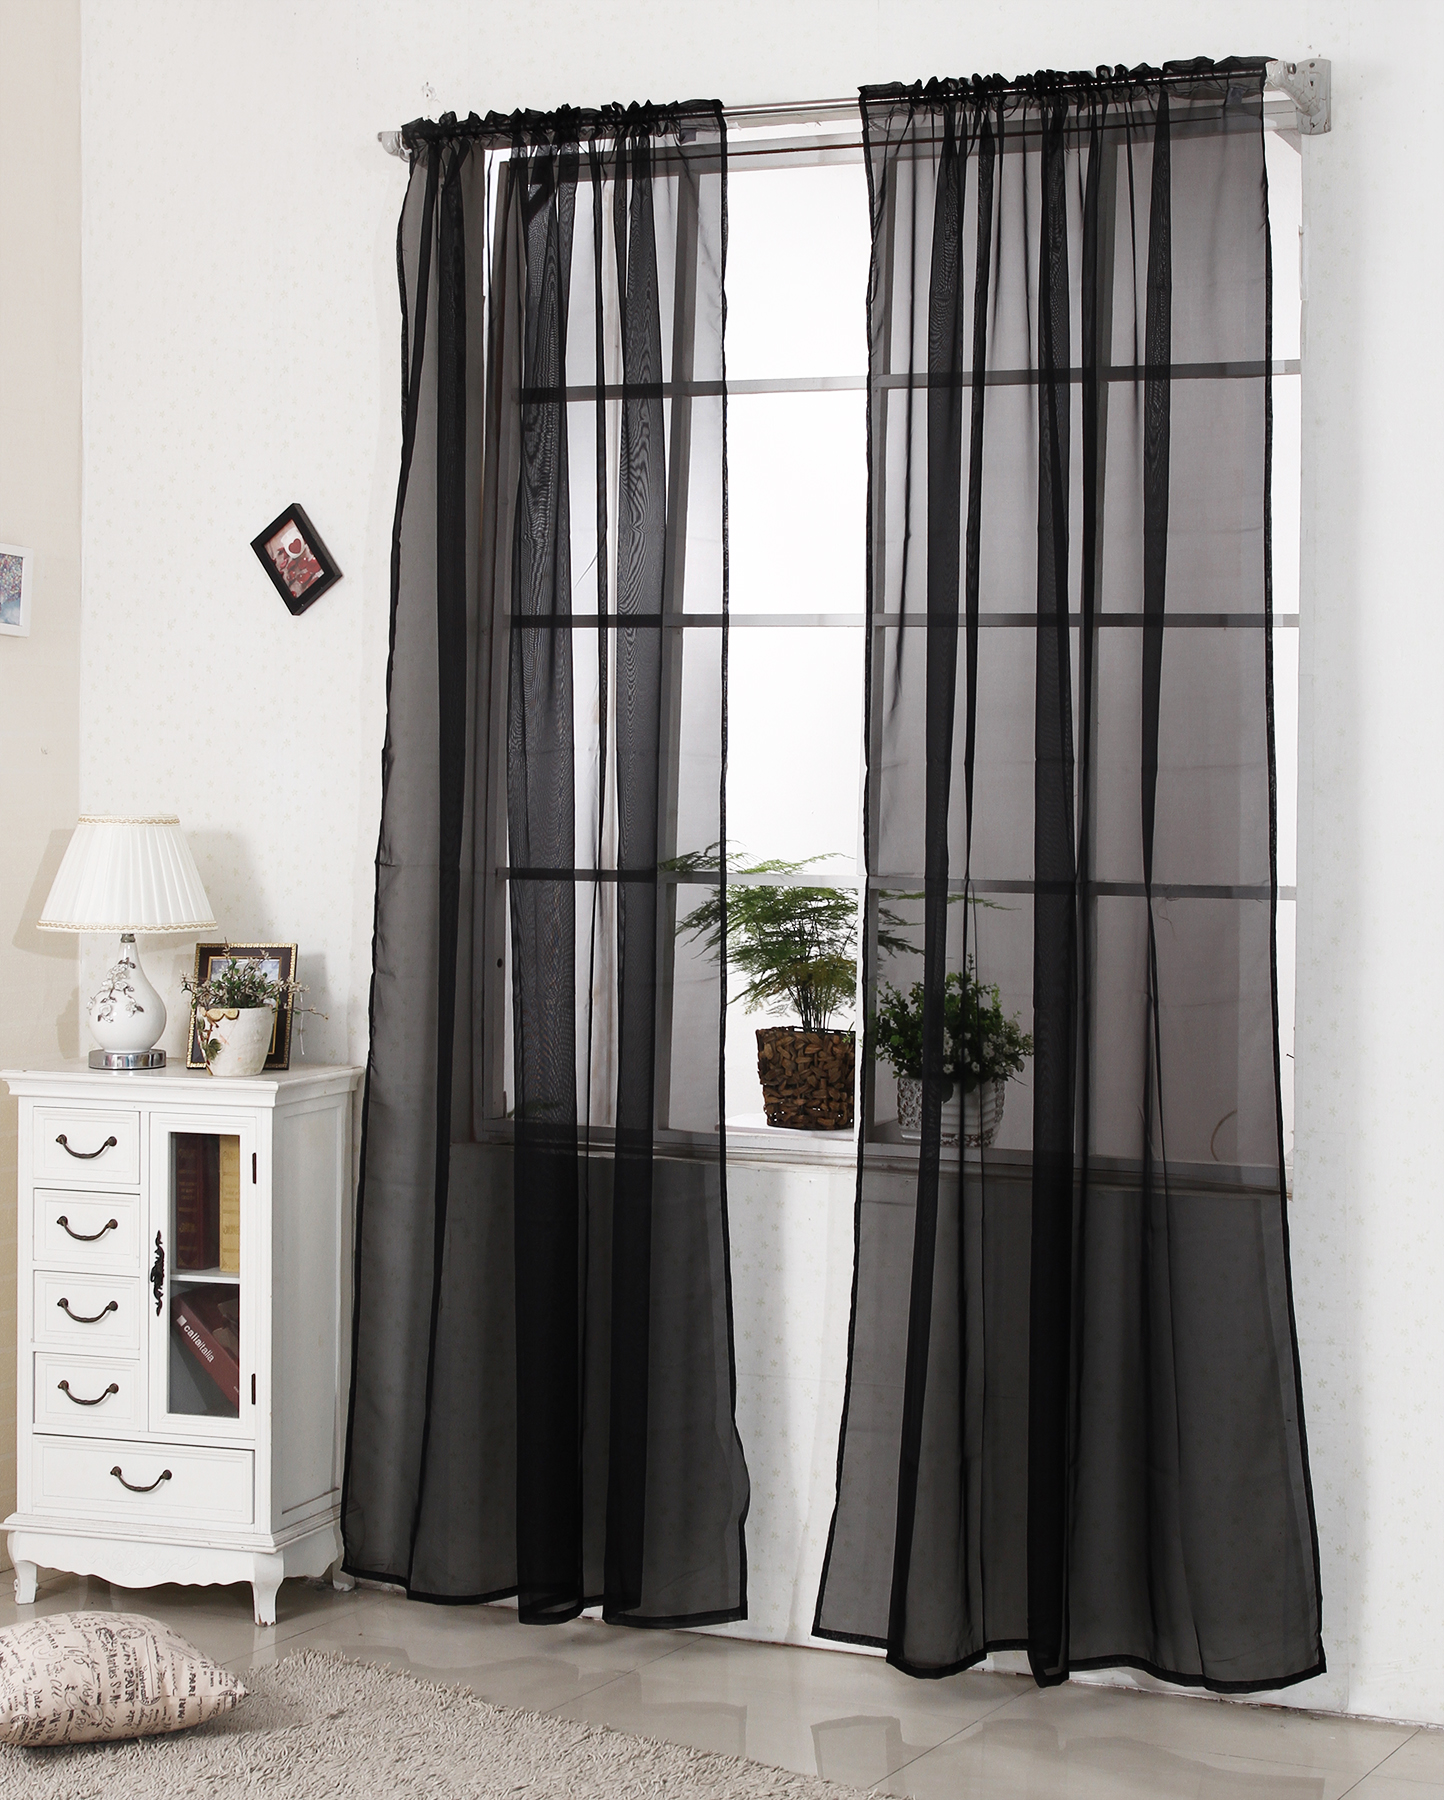 gardinen vorhang transparent senschal kr uselband dekoschal fenster stores 307. Black Bedroom Furniture Sets. Home Design Ideas